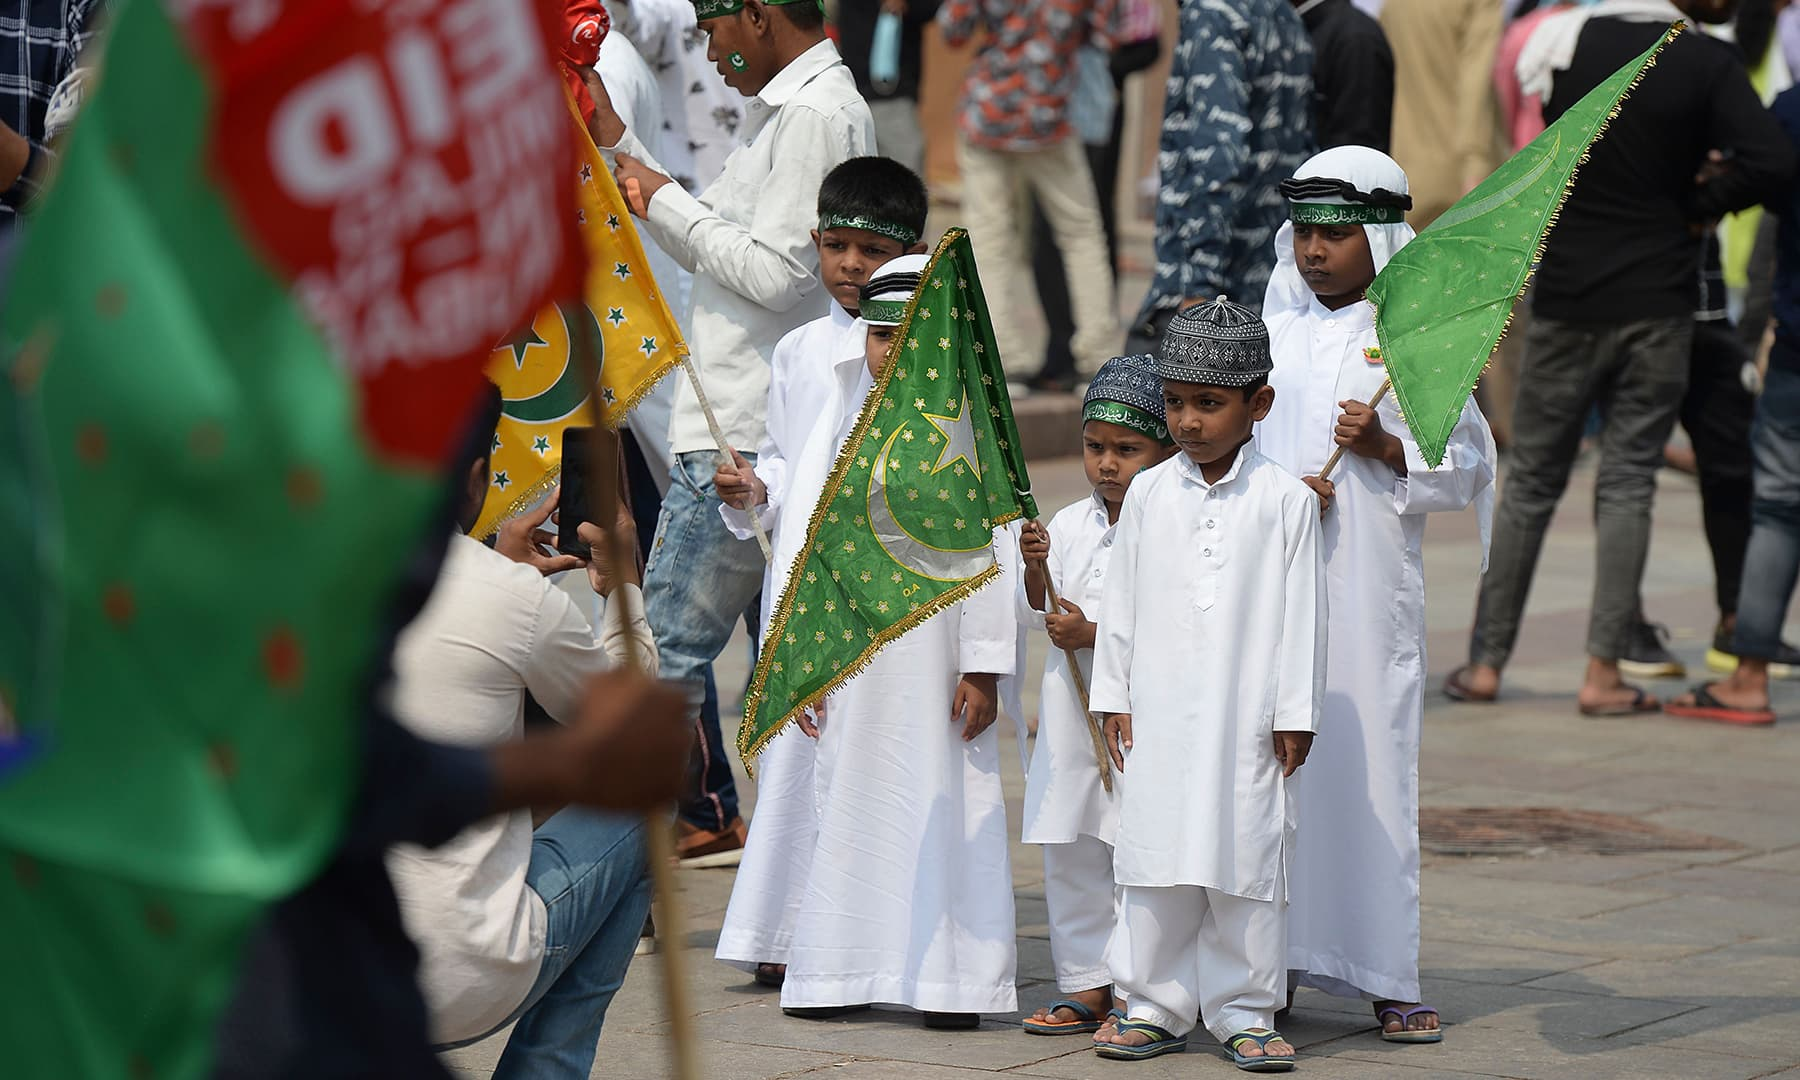 Muslim devotees take pictures as they participate in a procession during Eid-i-Miladun Nabi in Hyderabad, India on October 30. — AFP